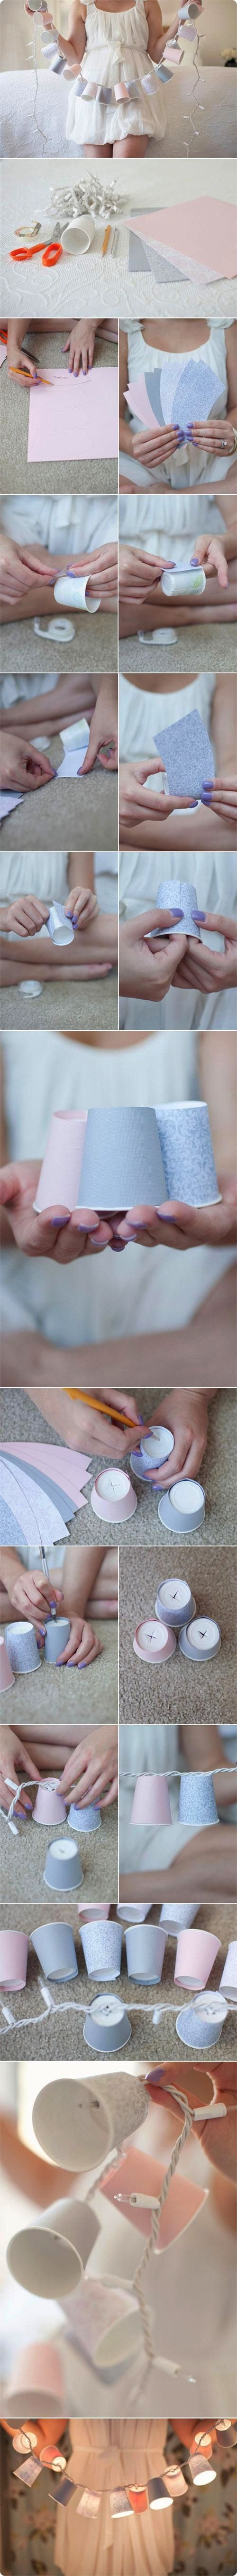 DIY paper cup light garland- such a great idea!